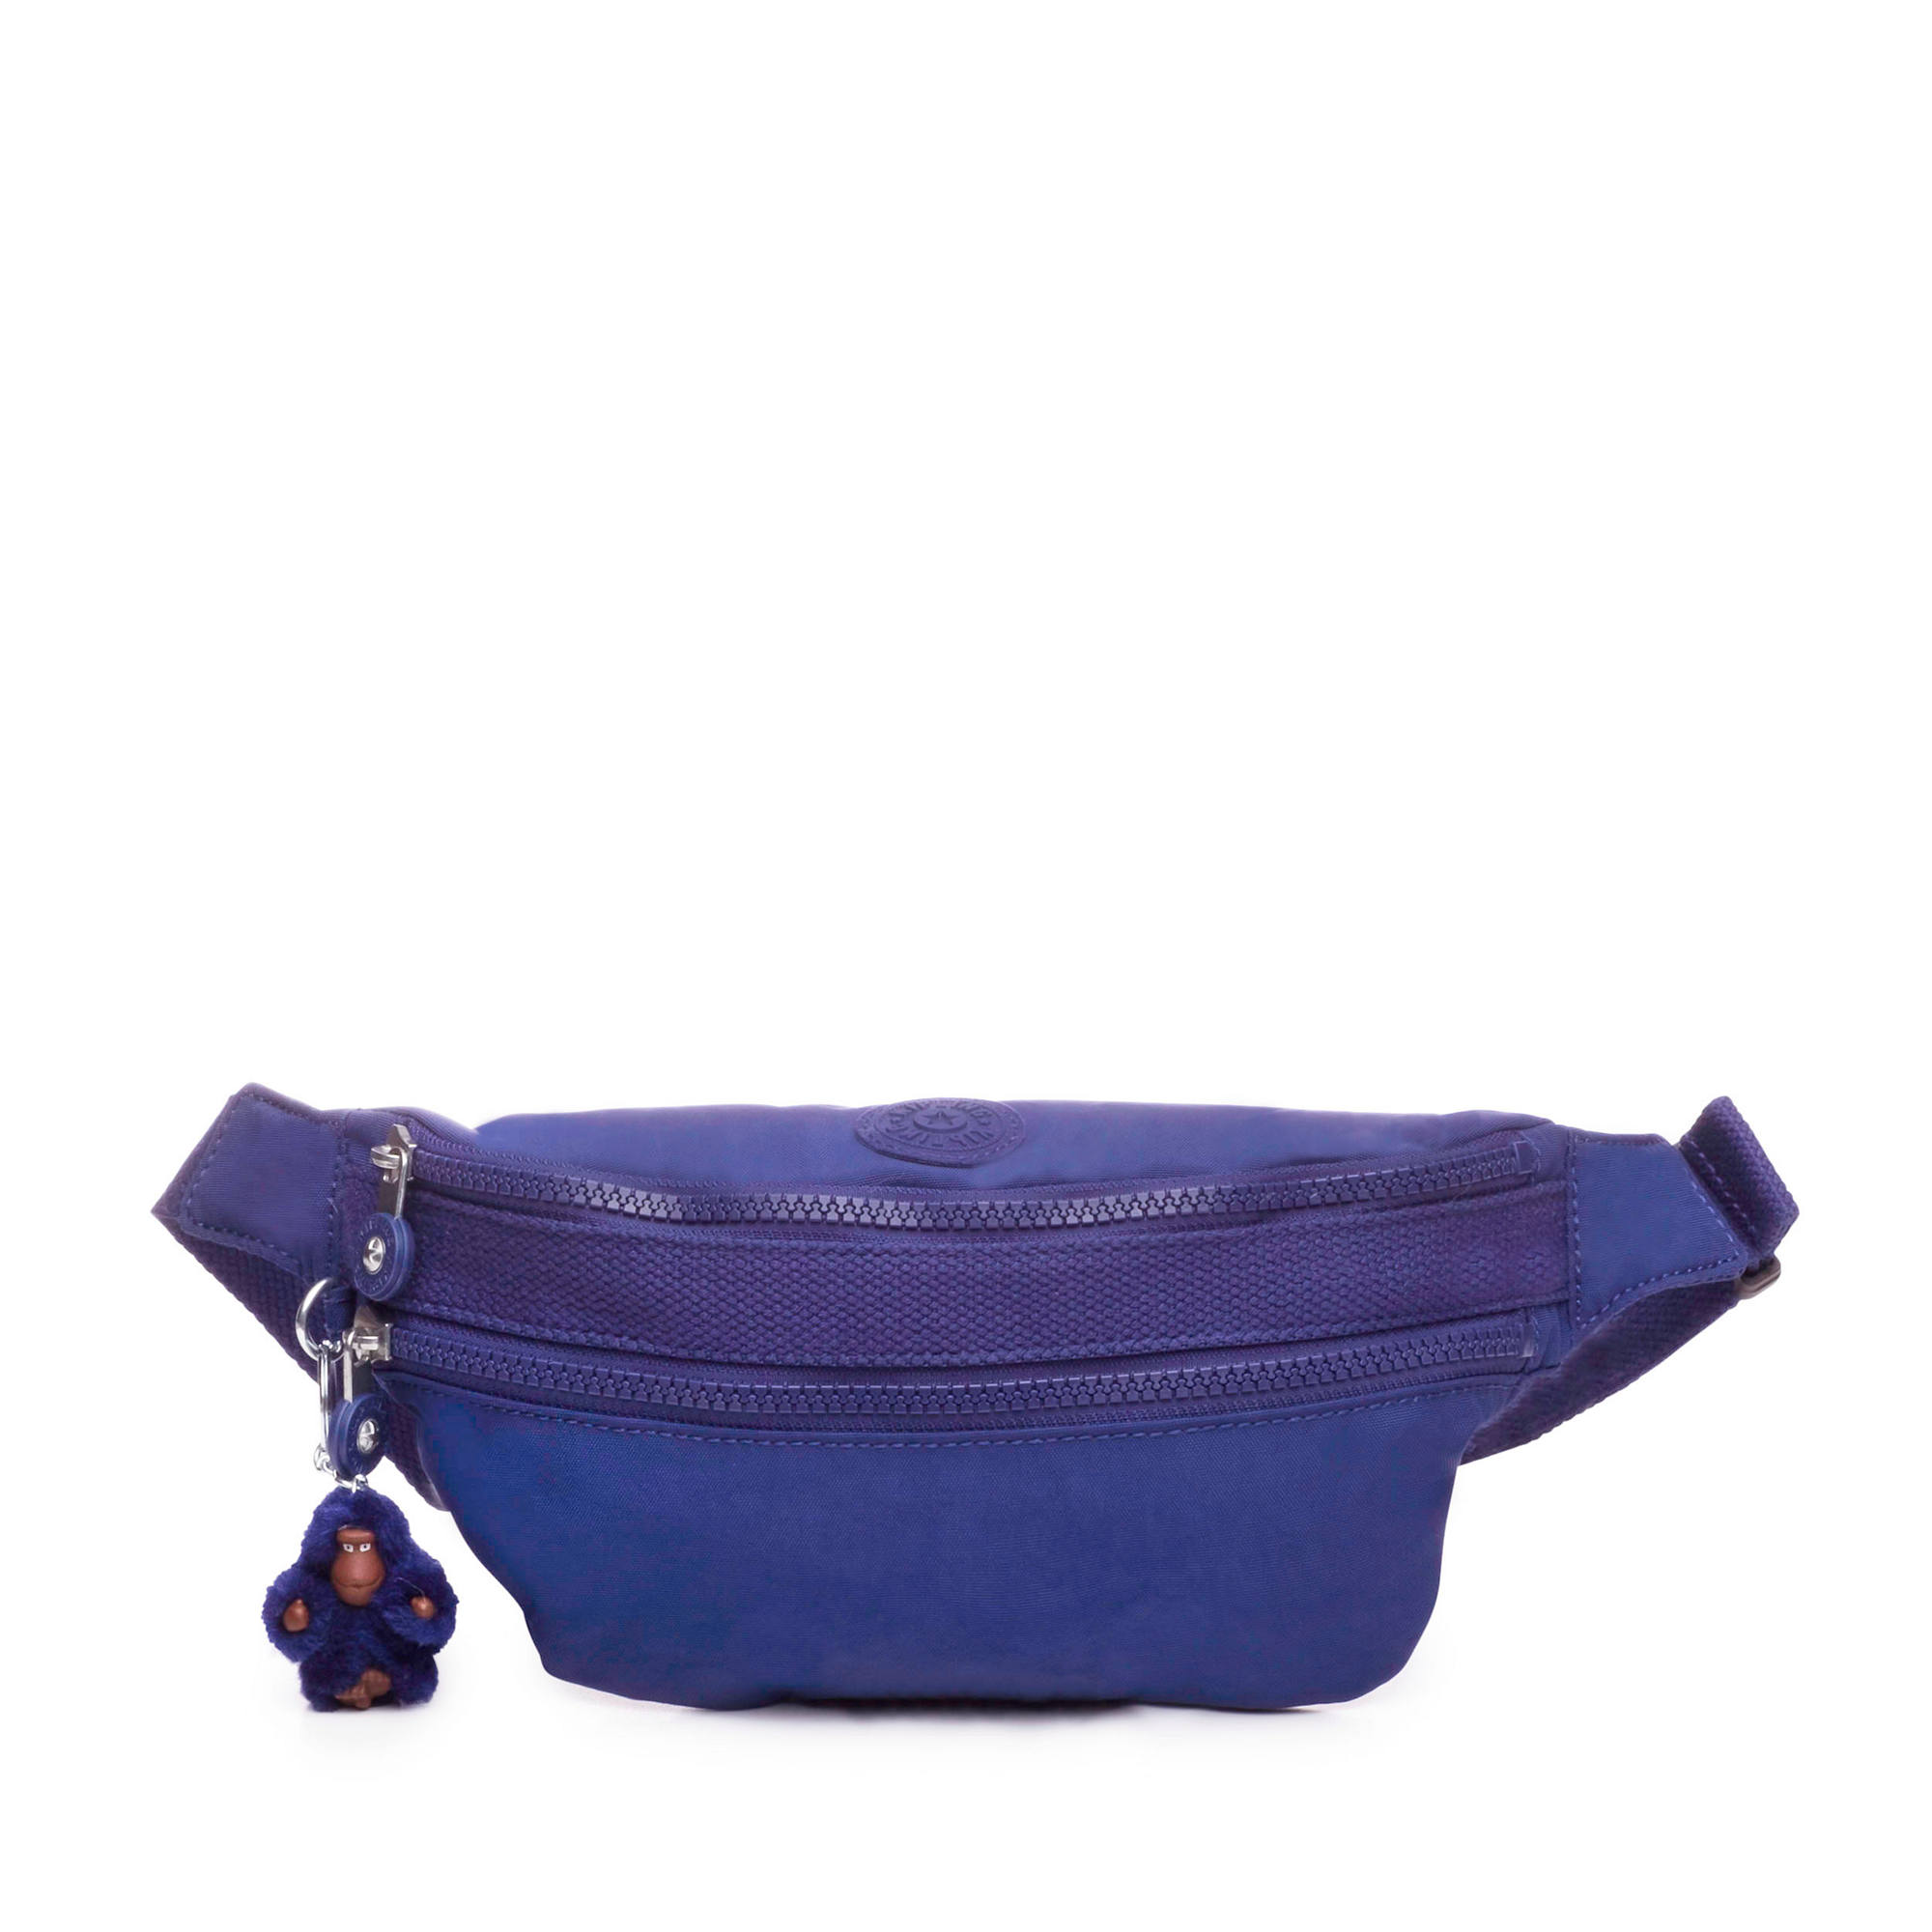 2090c7e4da7 Yasemina Fanny Pack,Cobalt Dream Tonal Zipper,large